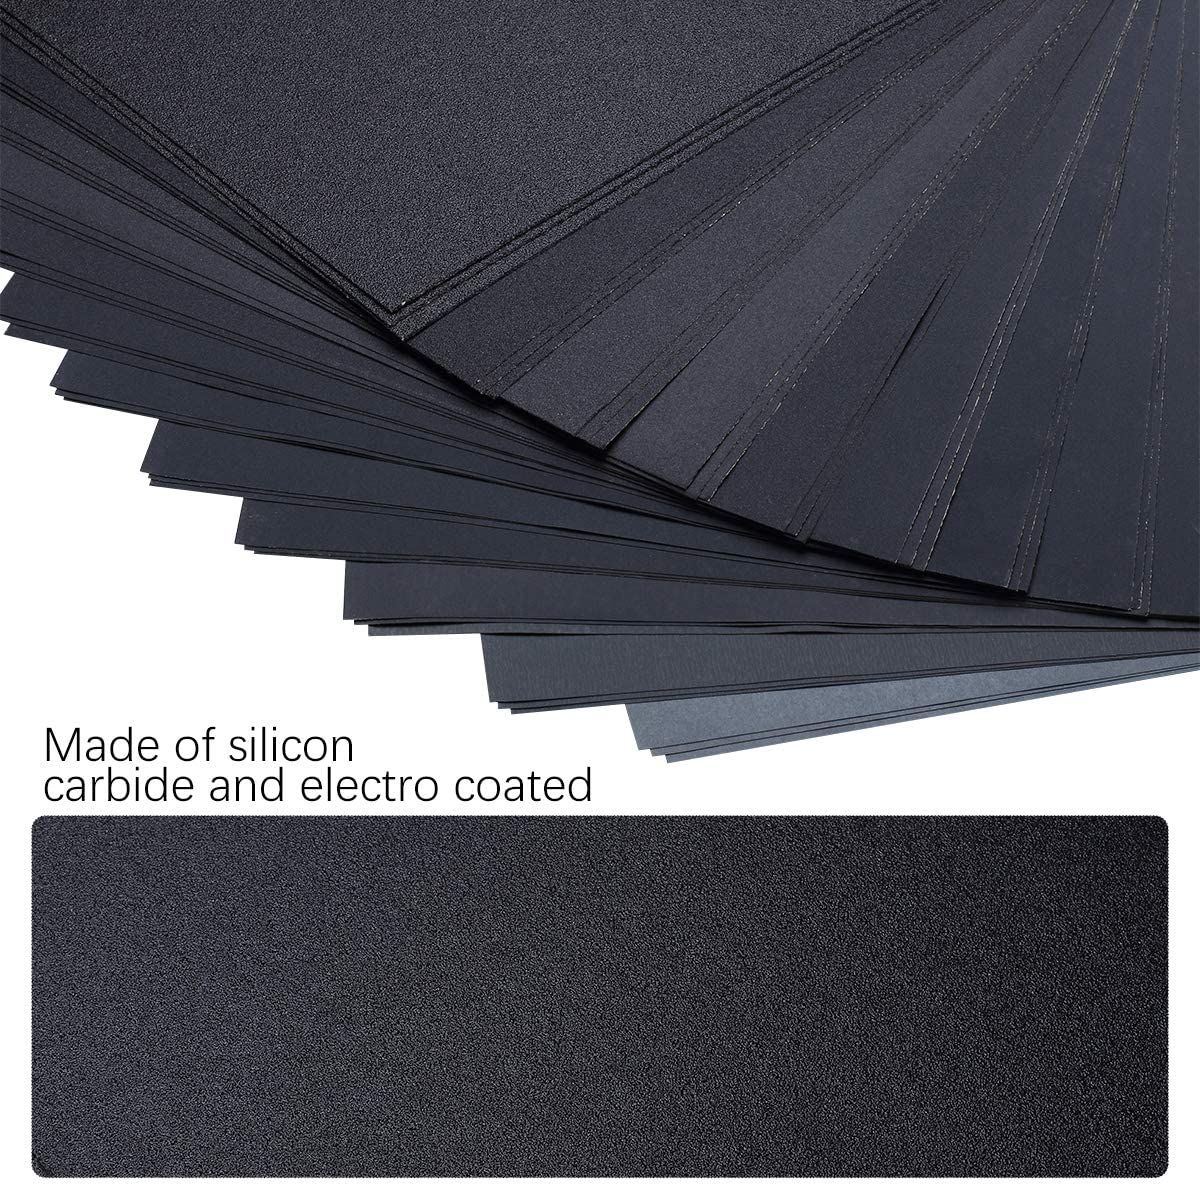 120 To 5000 Assorted Grit Sandpaper for Wood Furniture Finishing, Metal Sanding and Automotive Polishing, Dry or Wet Sanding, 9 x 11 Inch, 36-Sheet 61J4nt9Xg3L